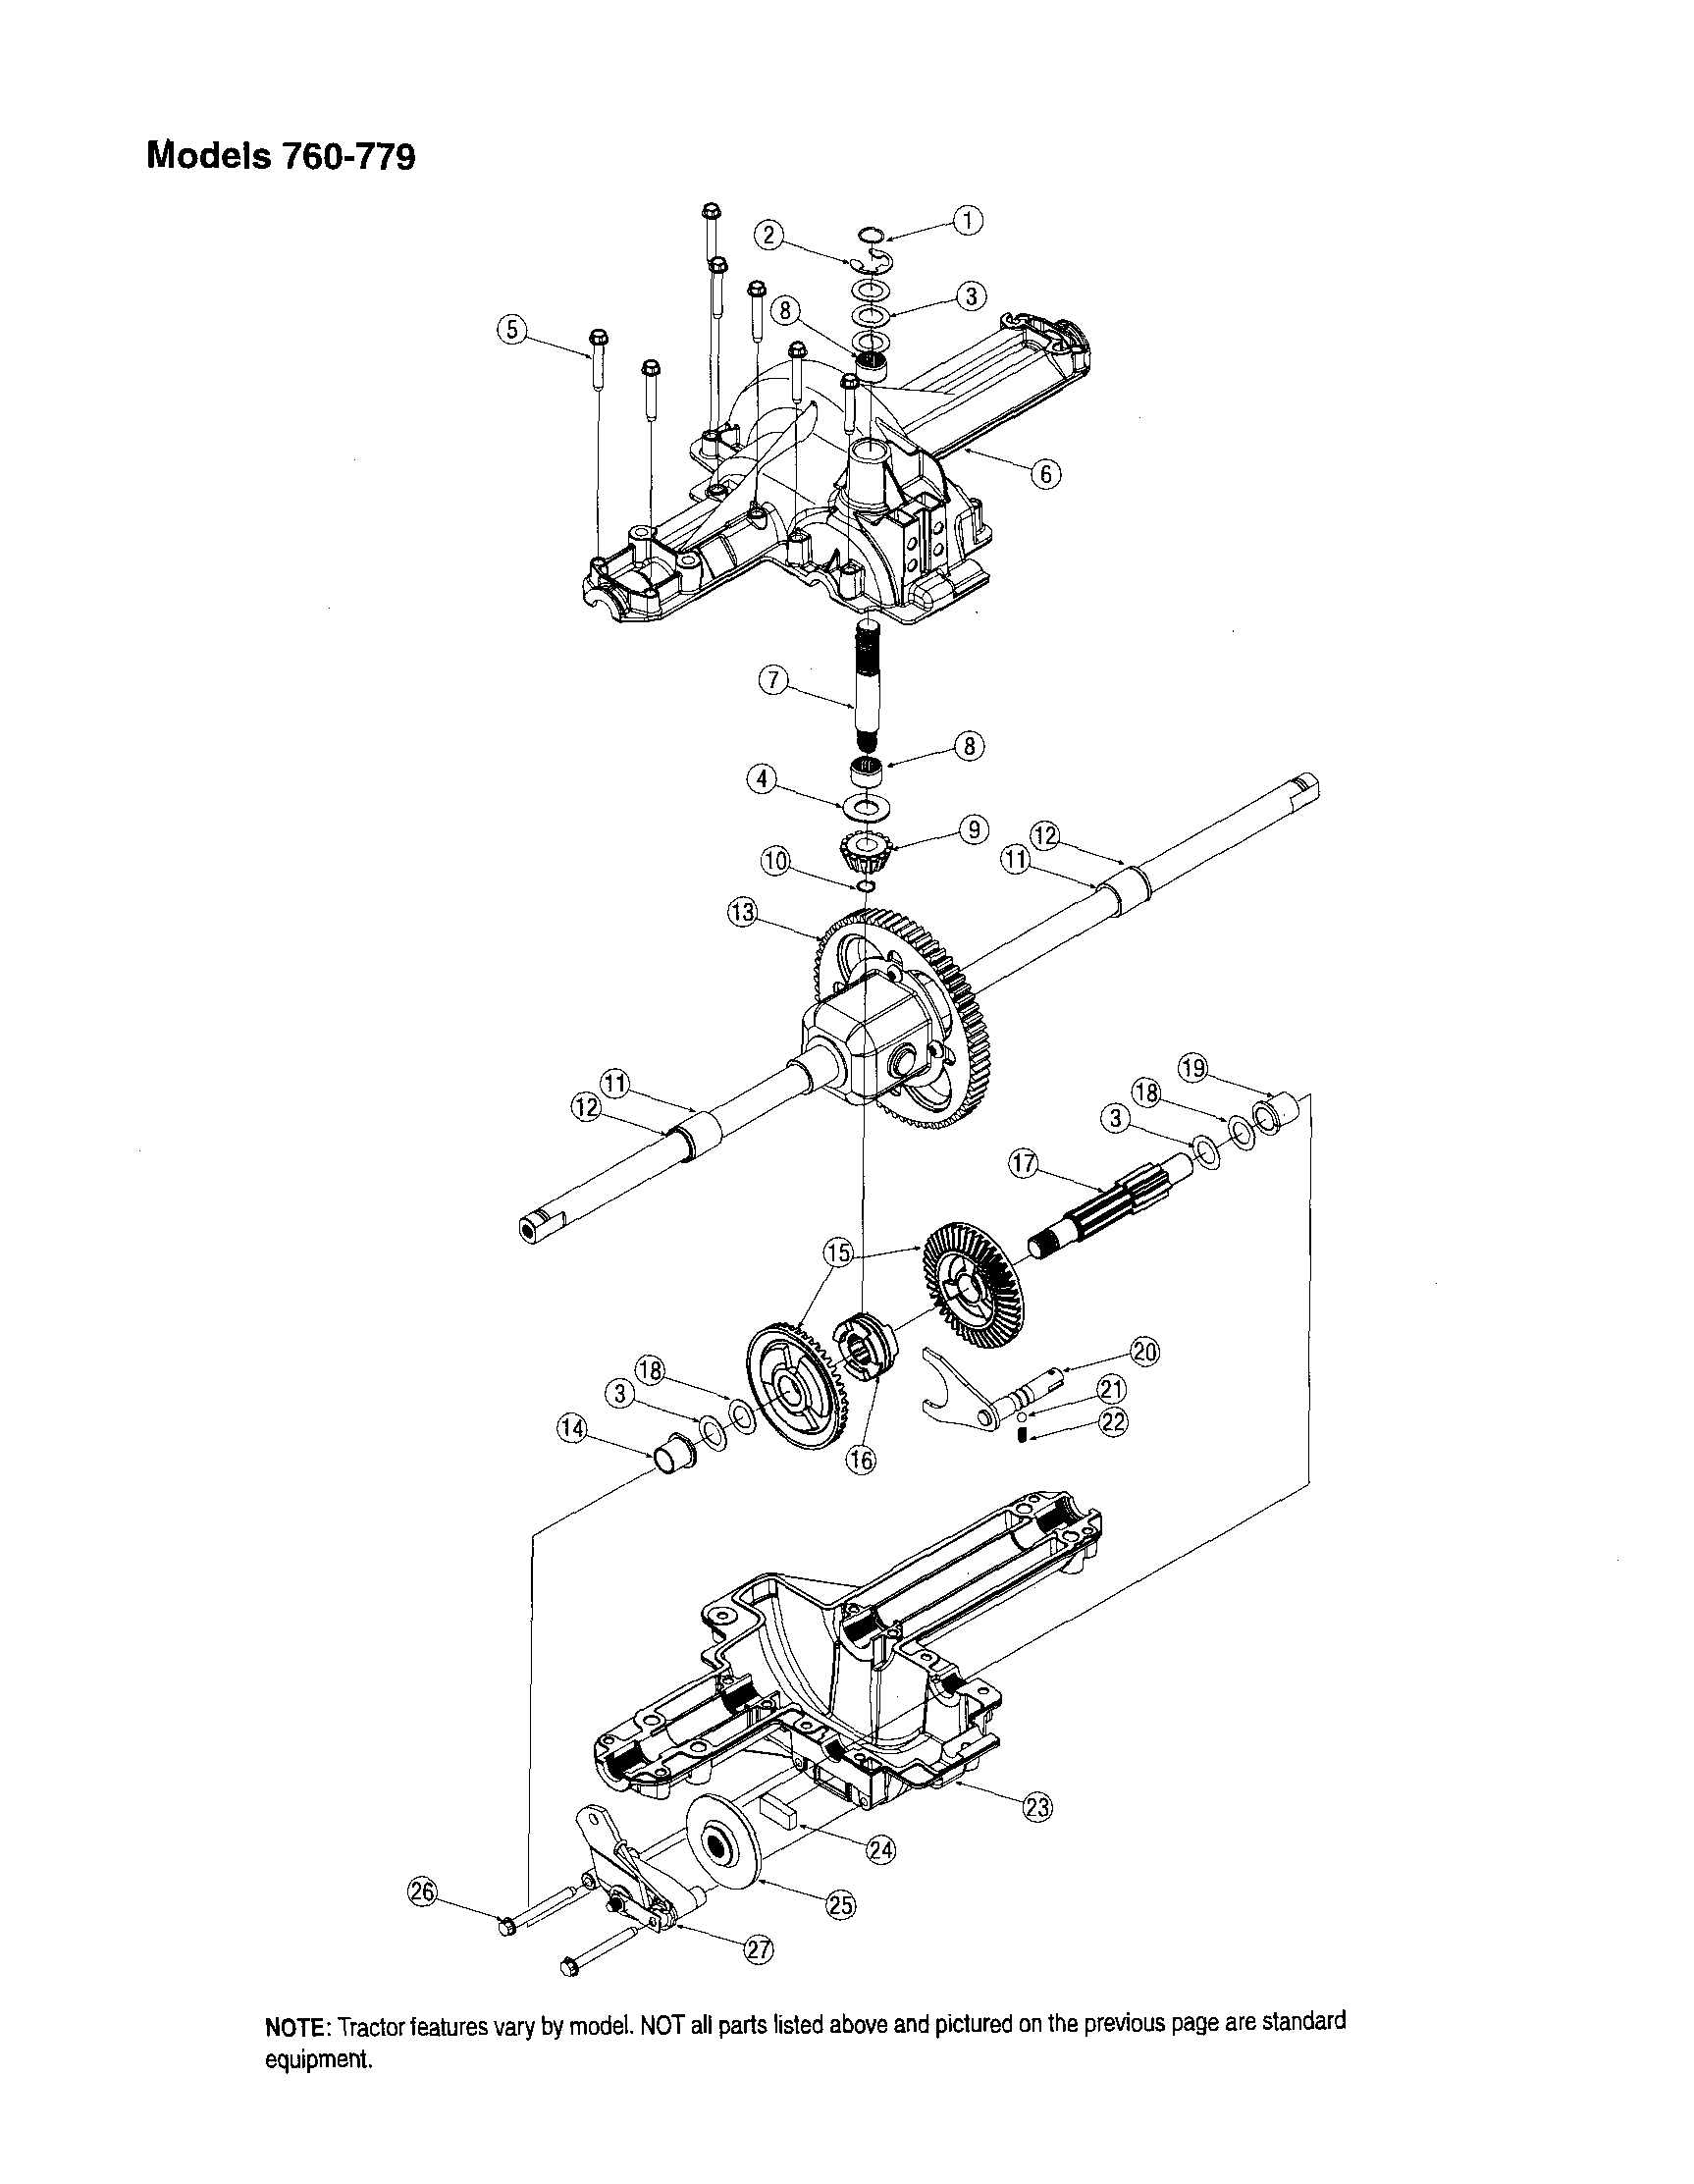 hight resolution of mtd 13am762f765 differential models 760 779 diagram